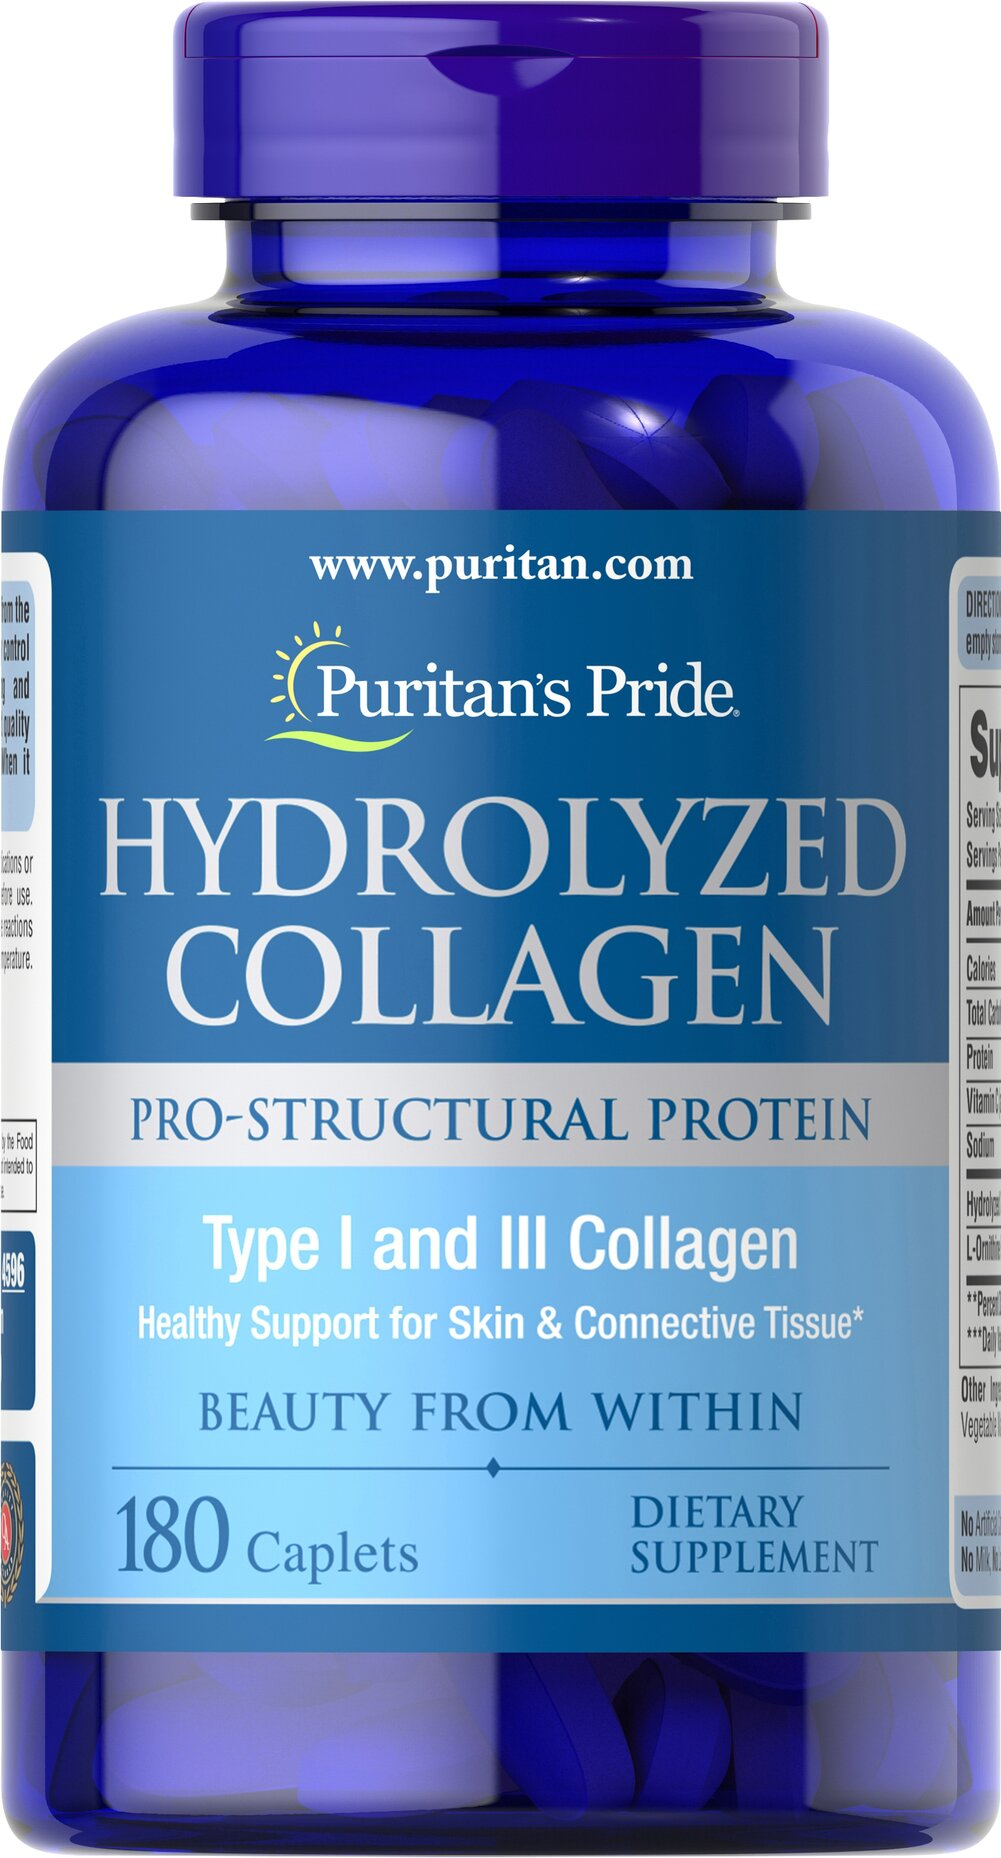 Hydrolyzed Collagen 1000 mg <p>Restore Strength and Flexibility to Hair, Skin and Nails</p><p>This 100% pure collagen protein supplement provides the major building materials for growth and maintenance of nails, hair and skin. Collagen is also an essential component of muscles, tendons, cartilage and teeth.**</p> 180 Caplets 1000 mg $21.49